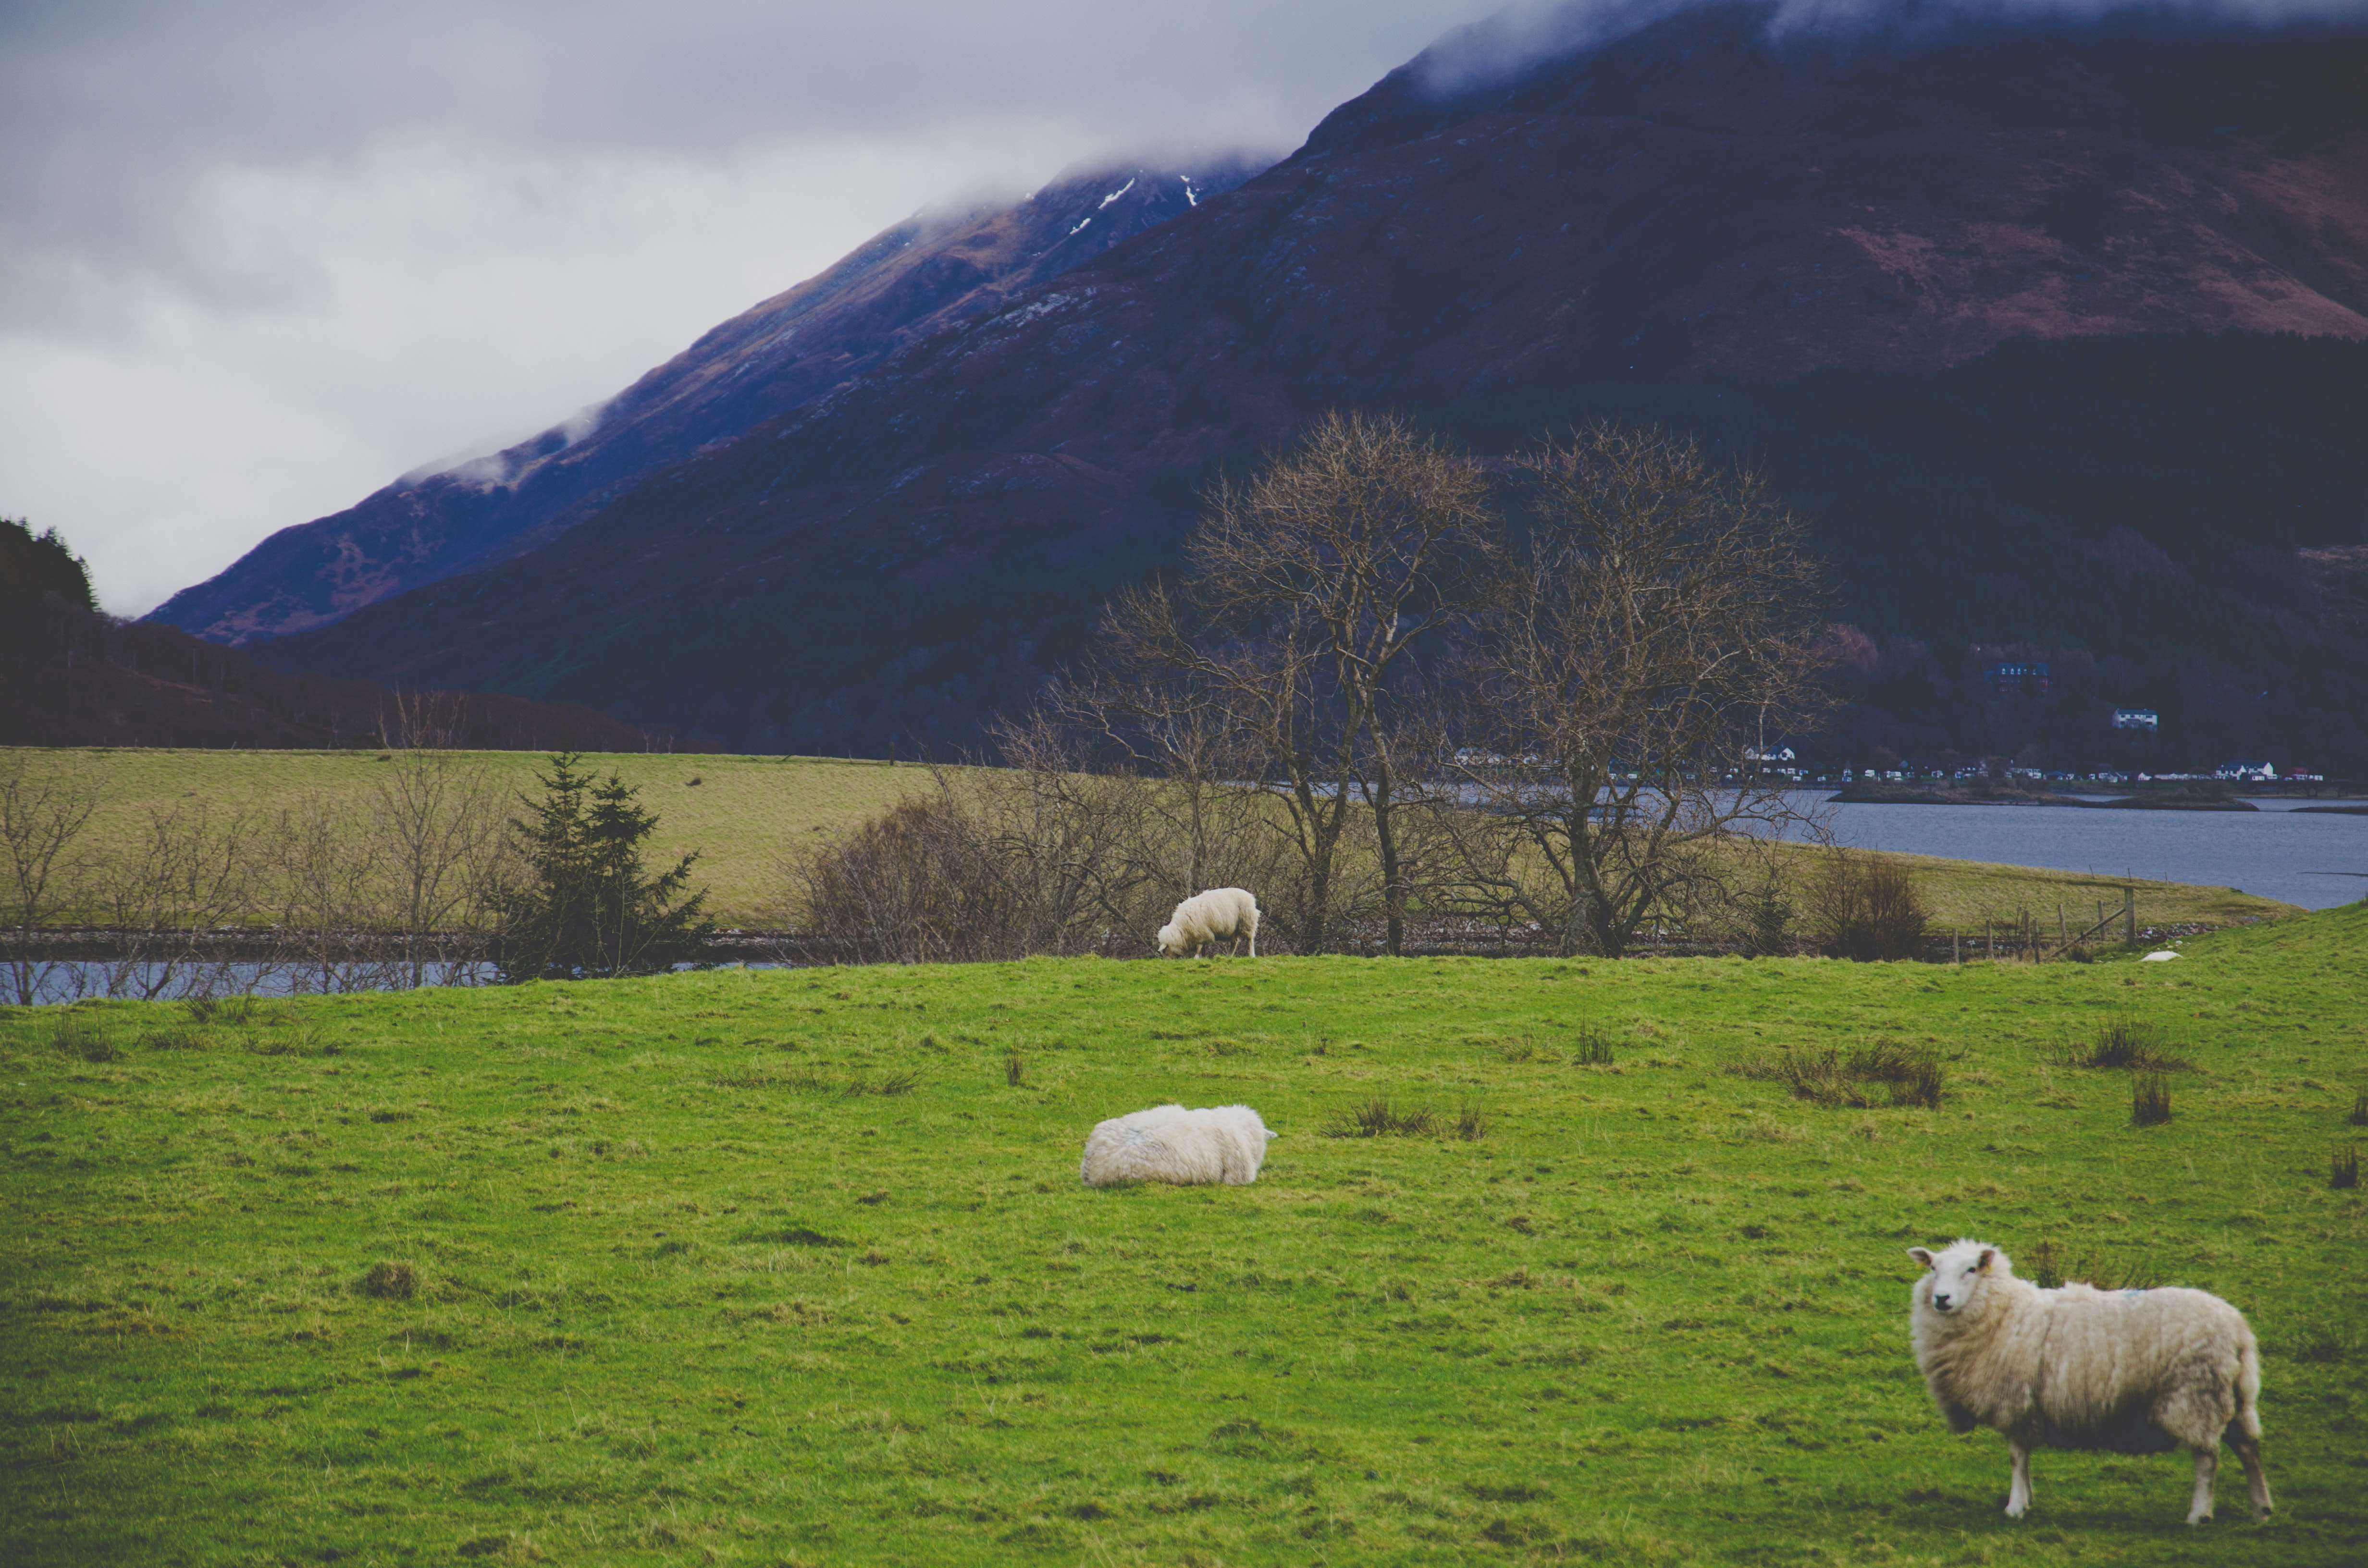 White Sheep on Green Grass Field, Outdoors, Nature, Mountain, Mammal, HQ Photo